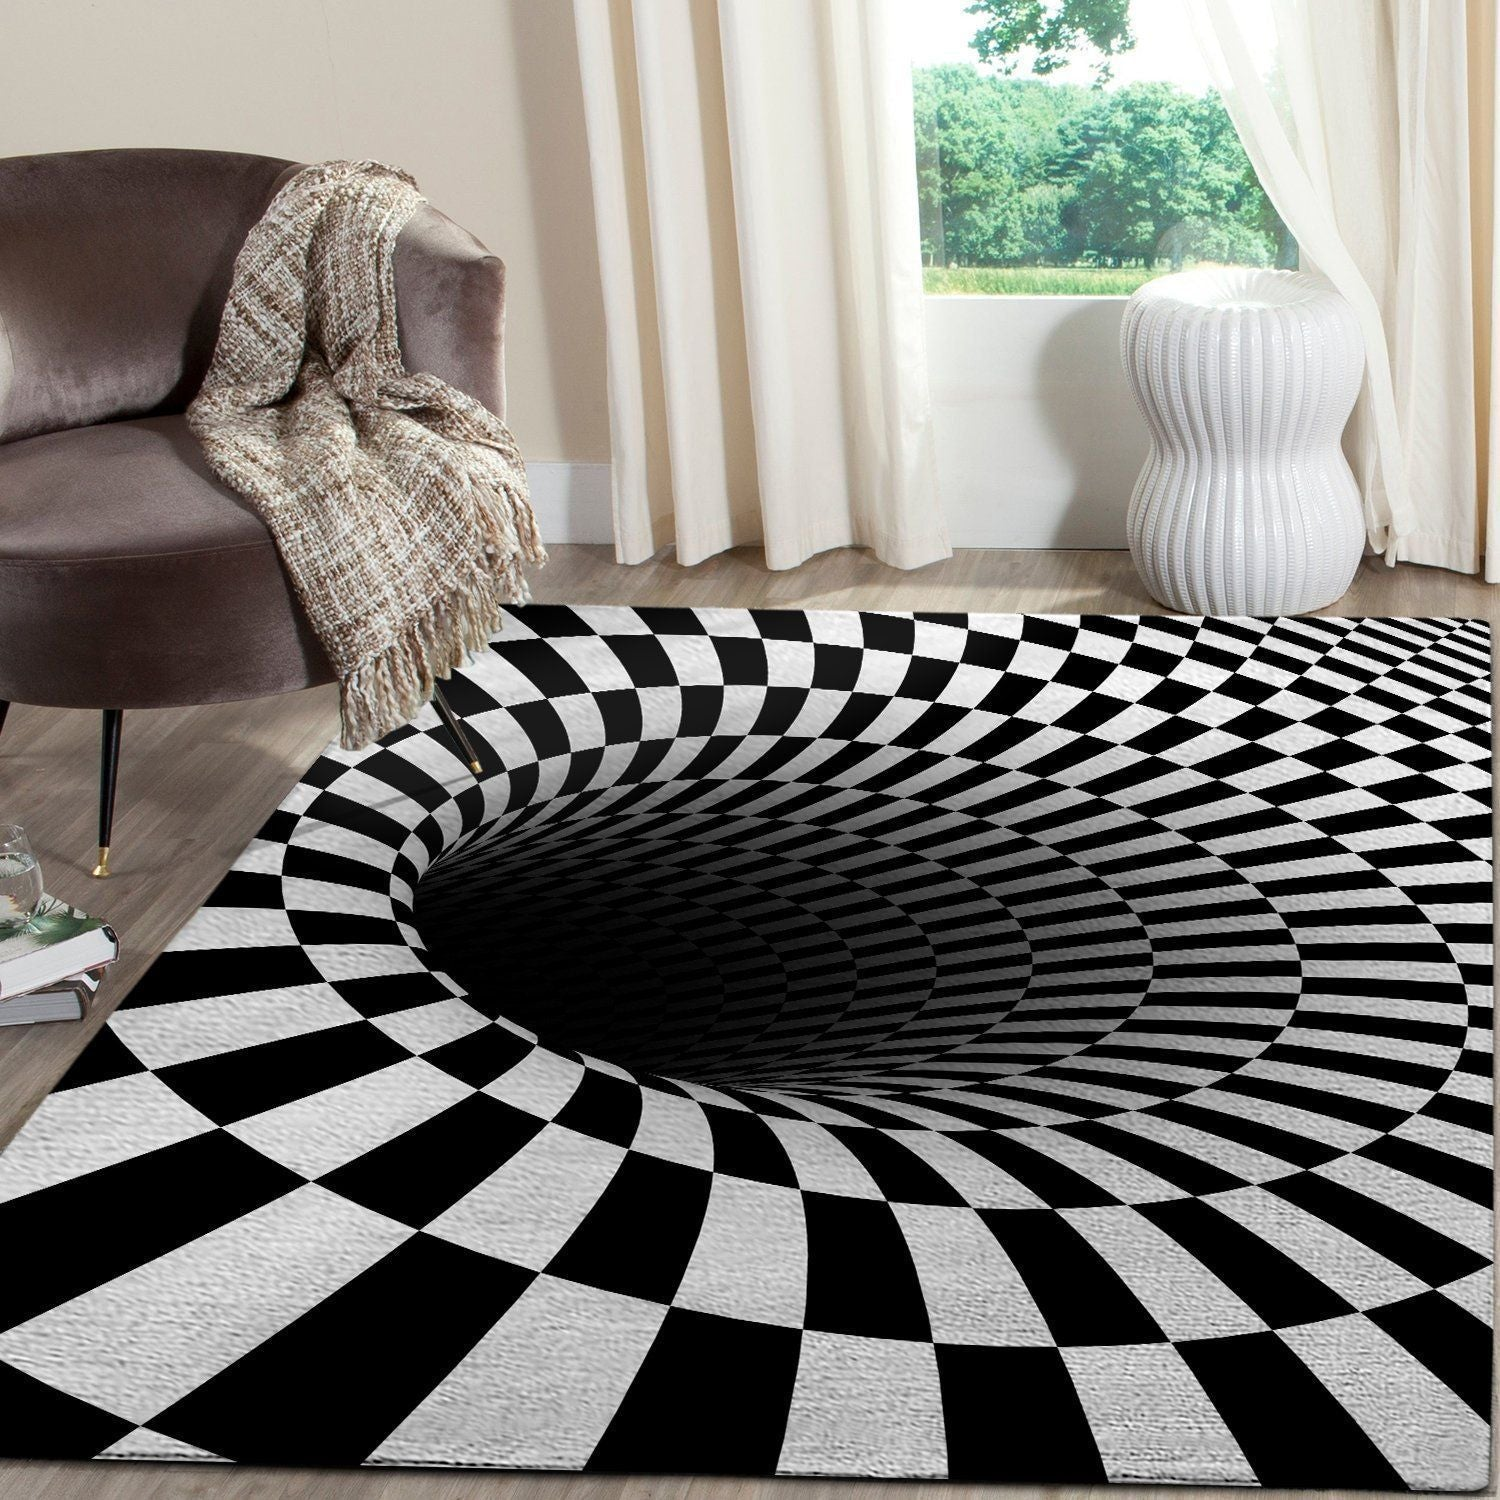 3D Area Rug - Black Hole OFD 101110